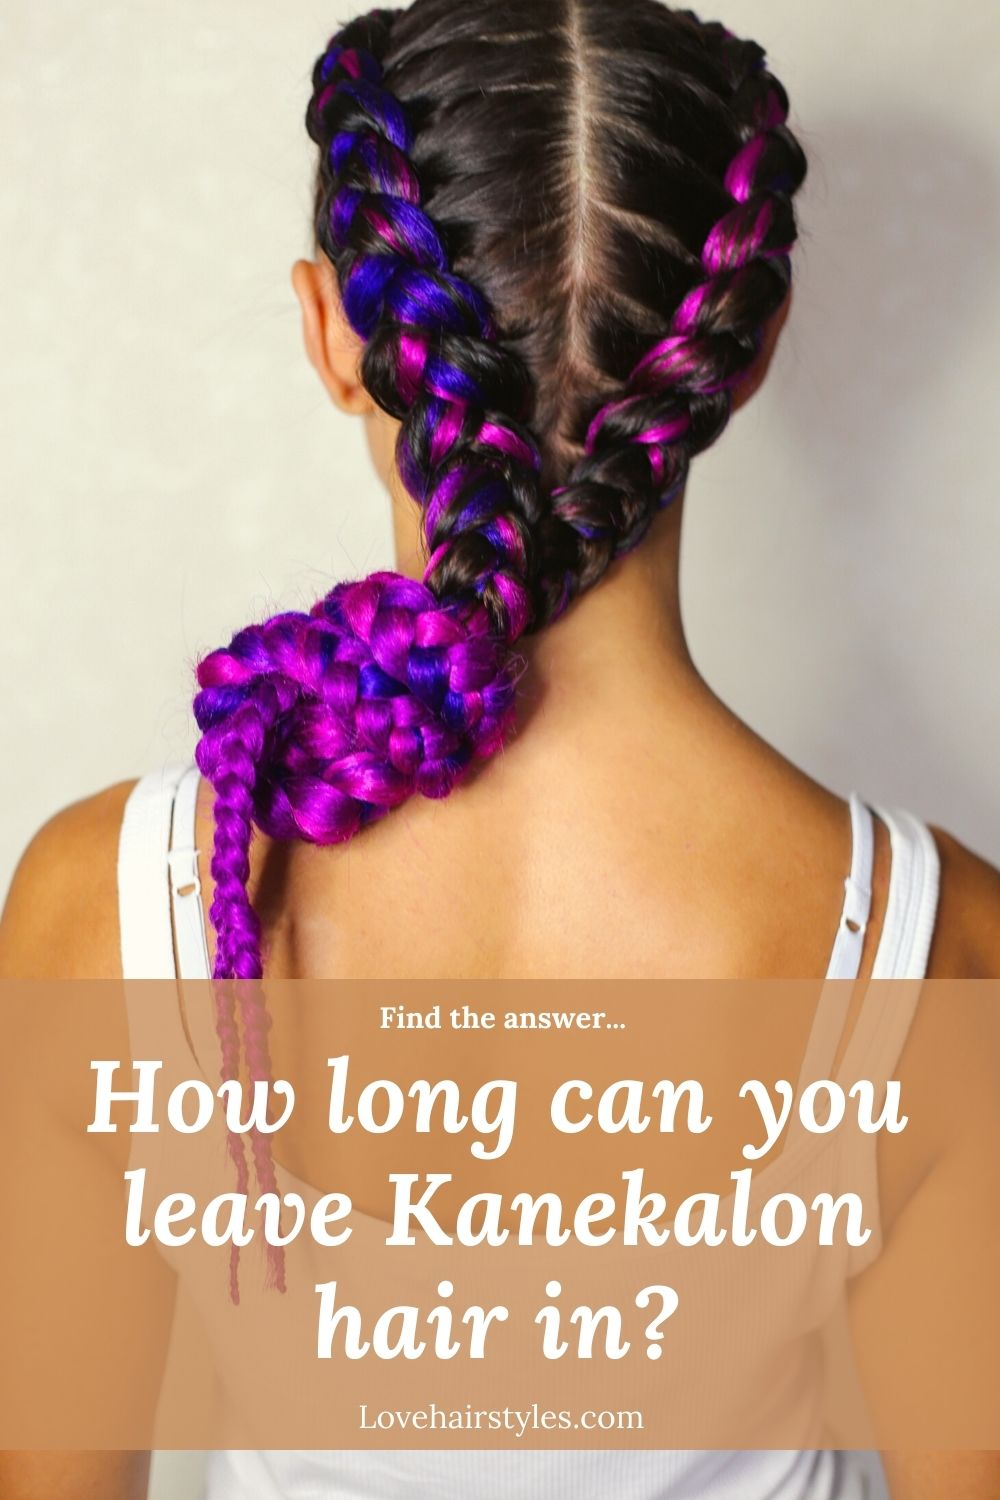 How long can you leave kanekalon hair in?